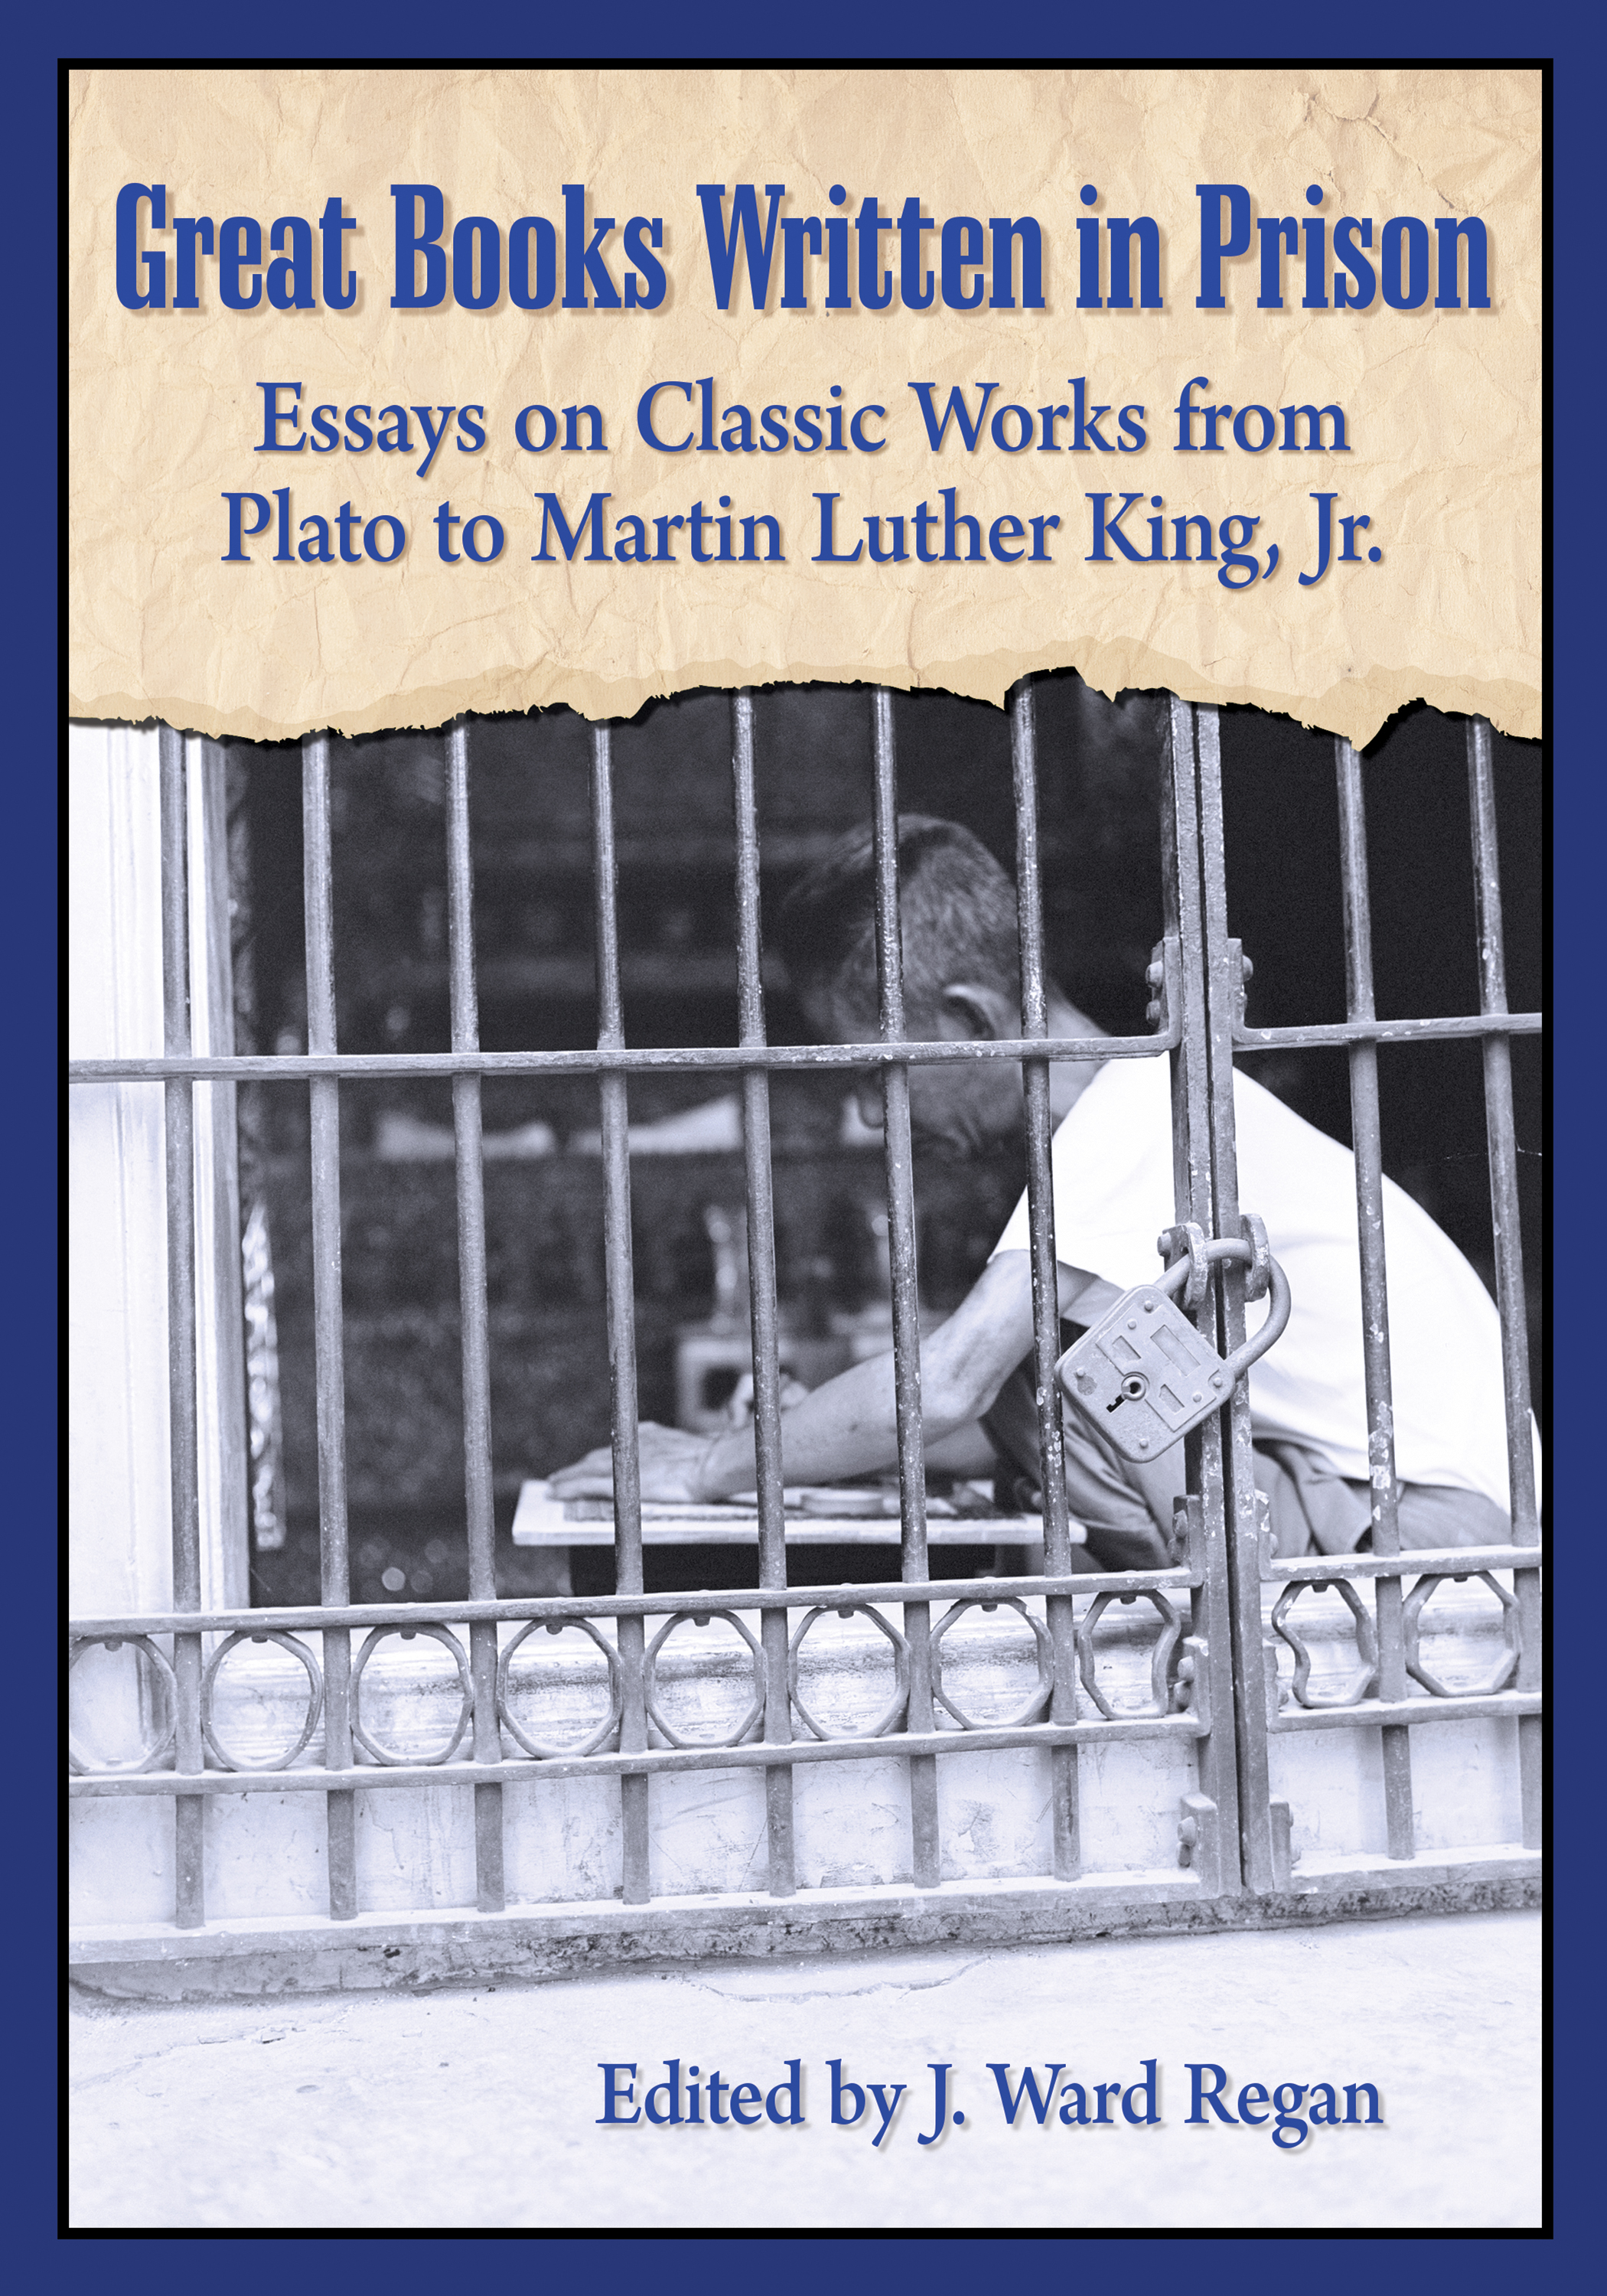 great books written in prison edited by j ward regan chapter great books written in prison edited by j ward regan chapter summaries